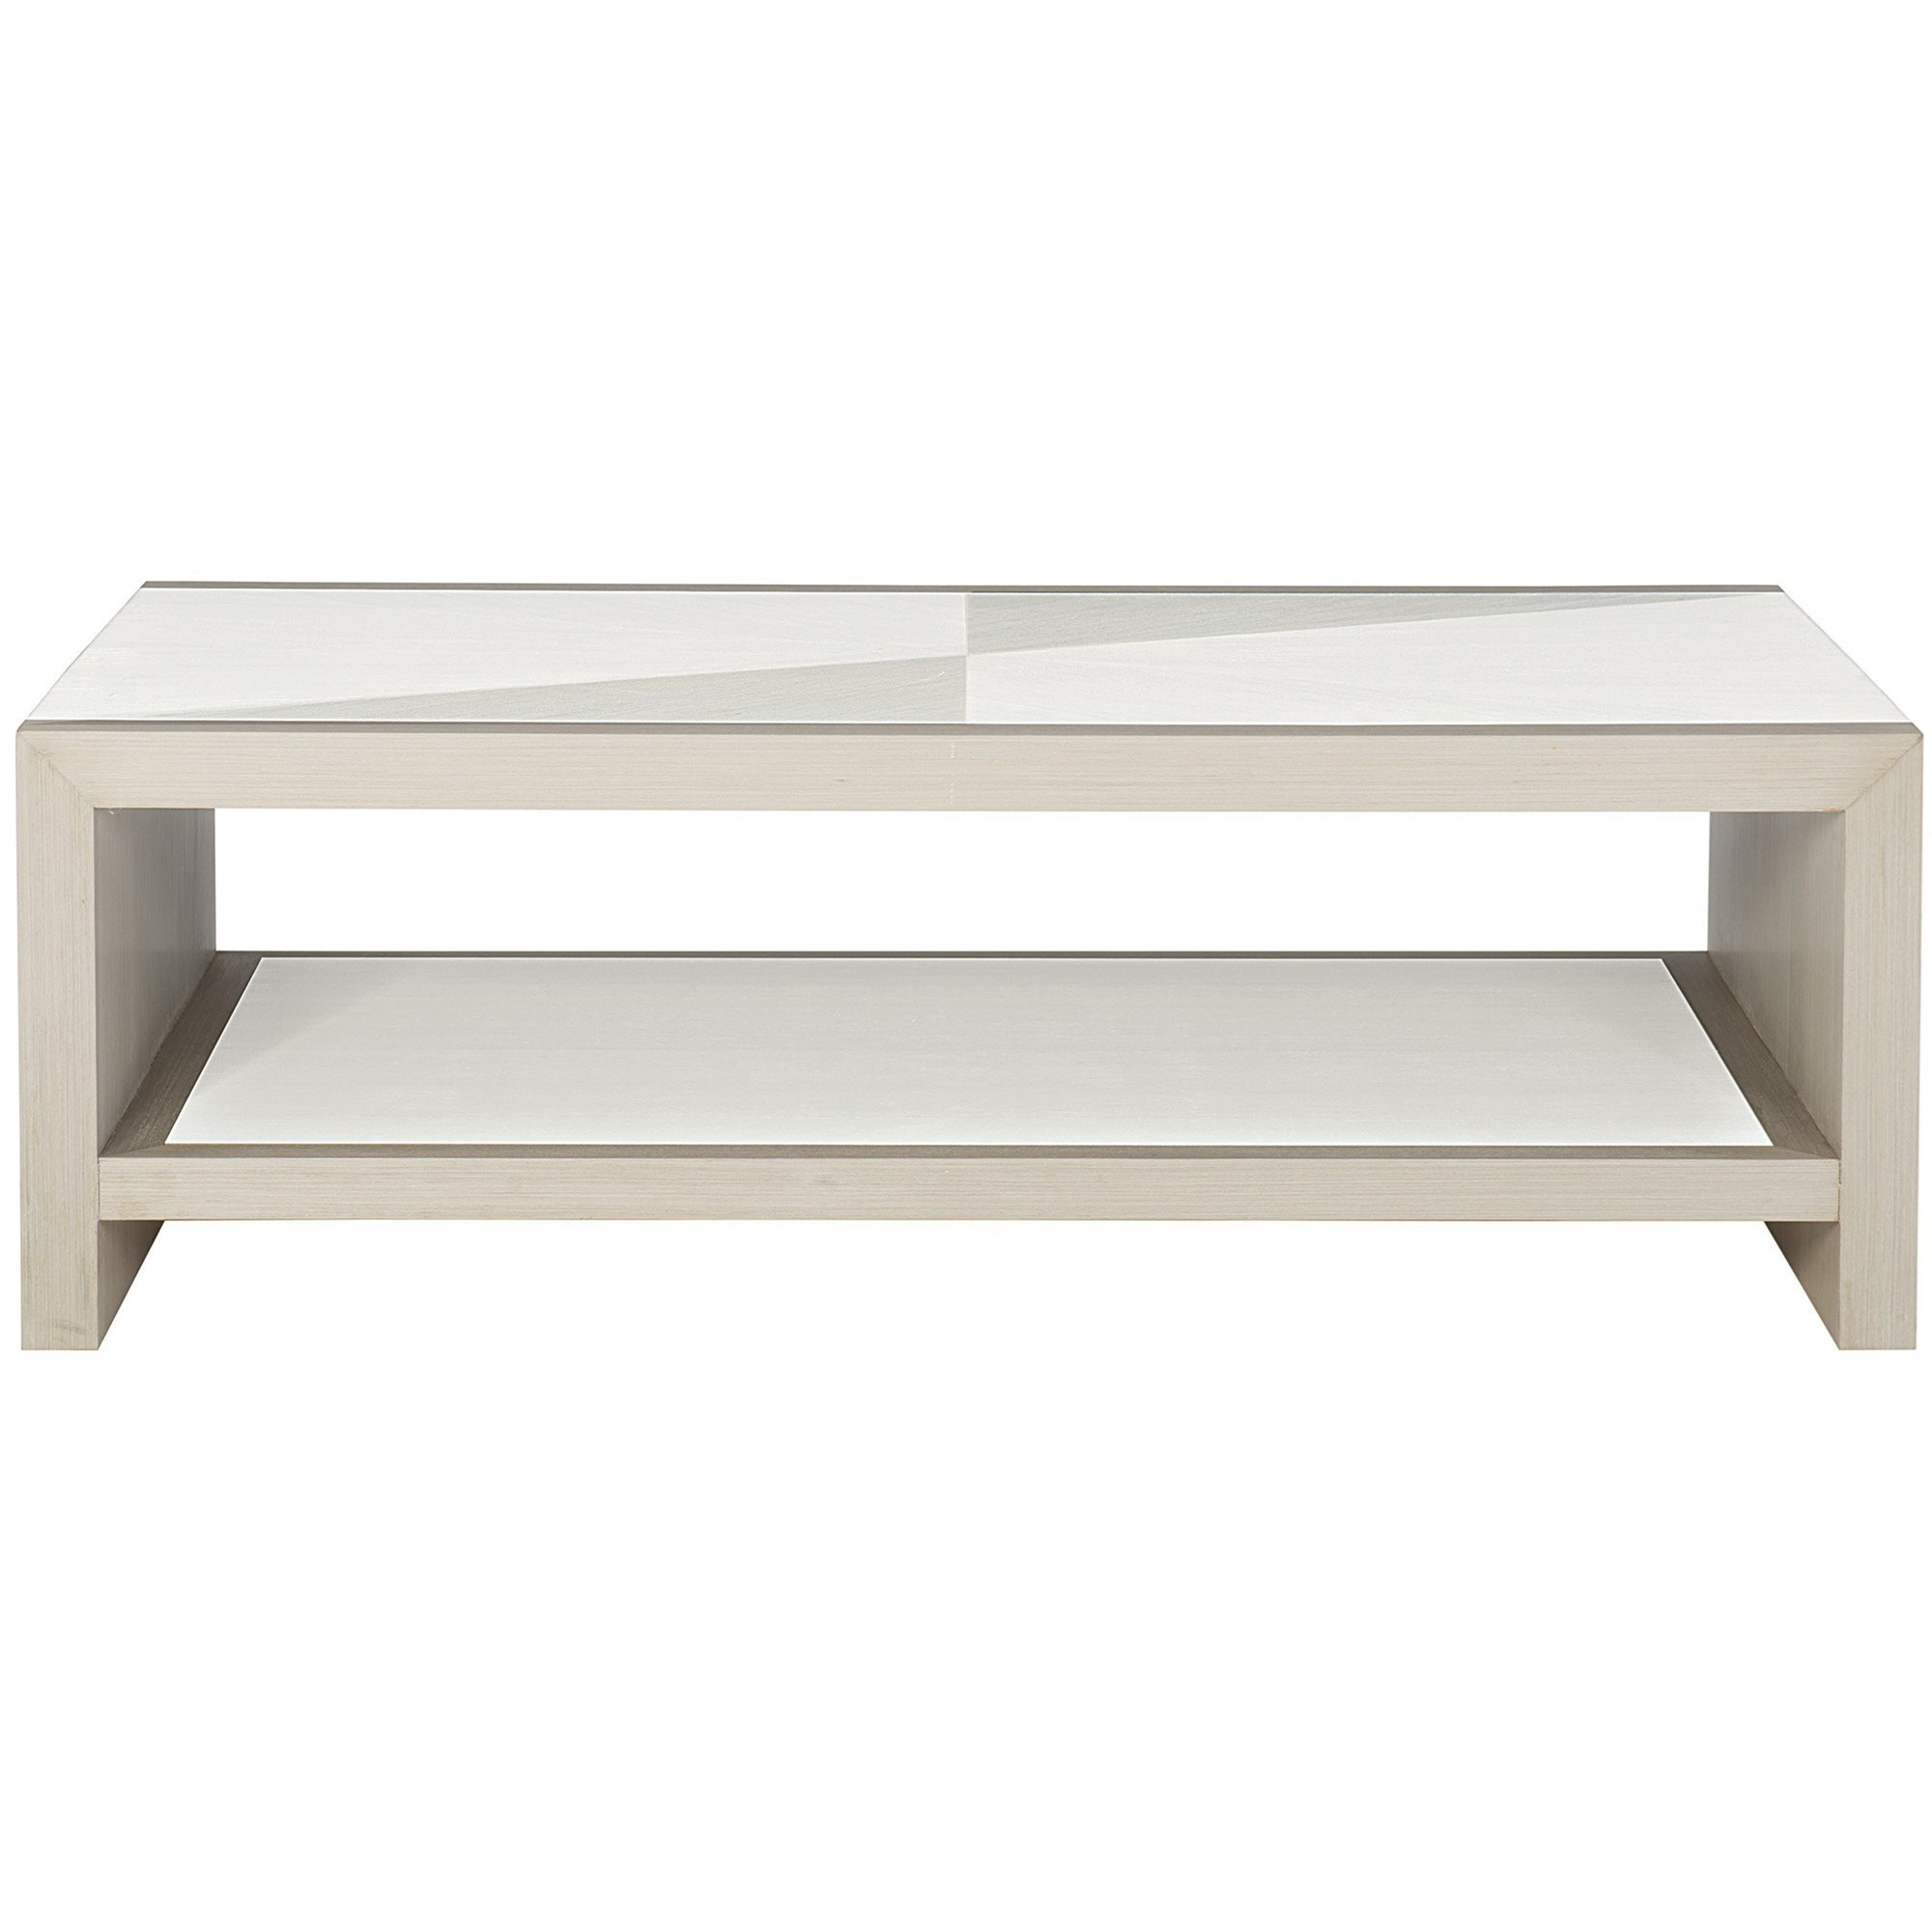 Axiom Rectangular Cocktail Table by Bernhardt at Baer's Furniture